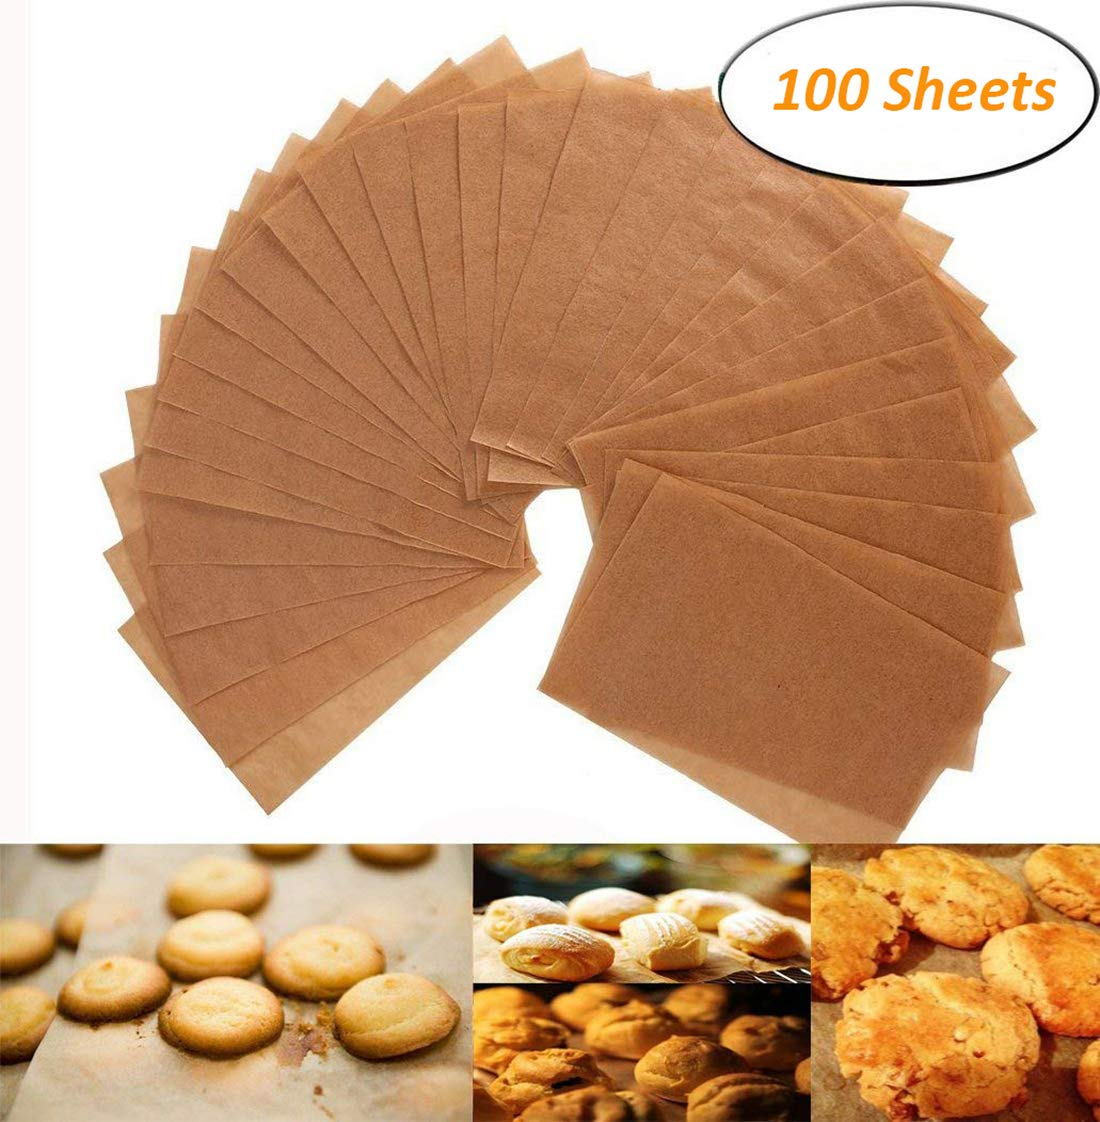 Parchment Paper Cookie Baking Sheets - 12 x 16 Inches - Non-Stick Brown Unbleached - Safe for High Temperature Baking - Pack of 100 Alago AL-047